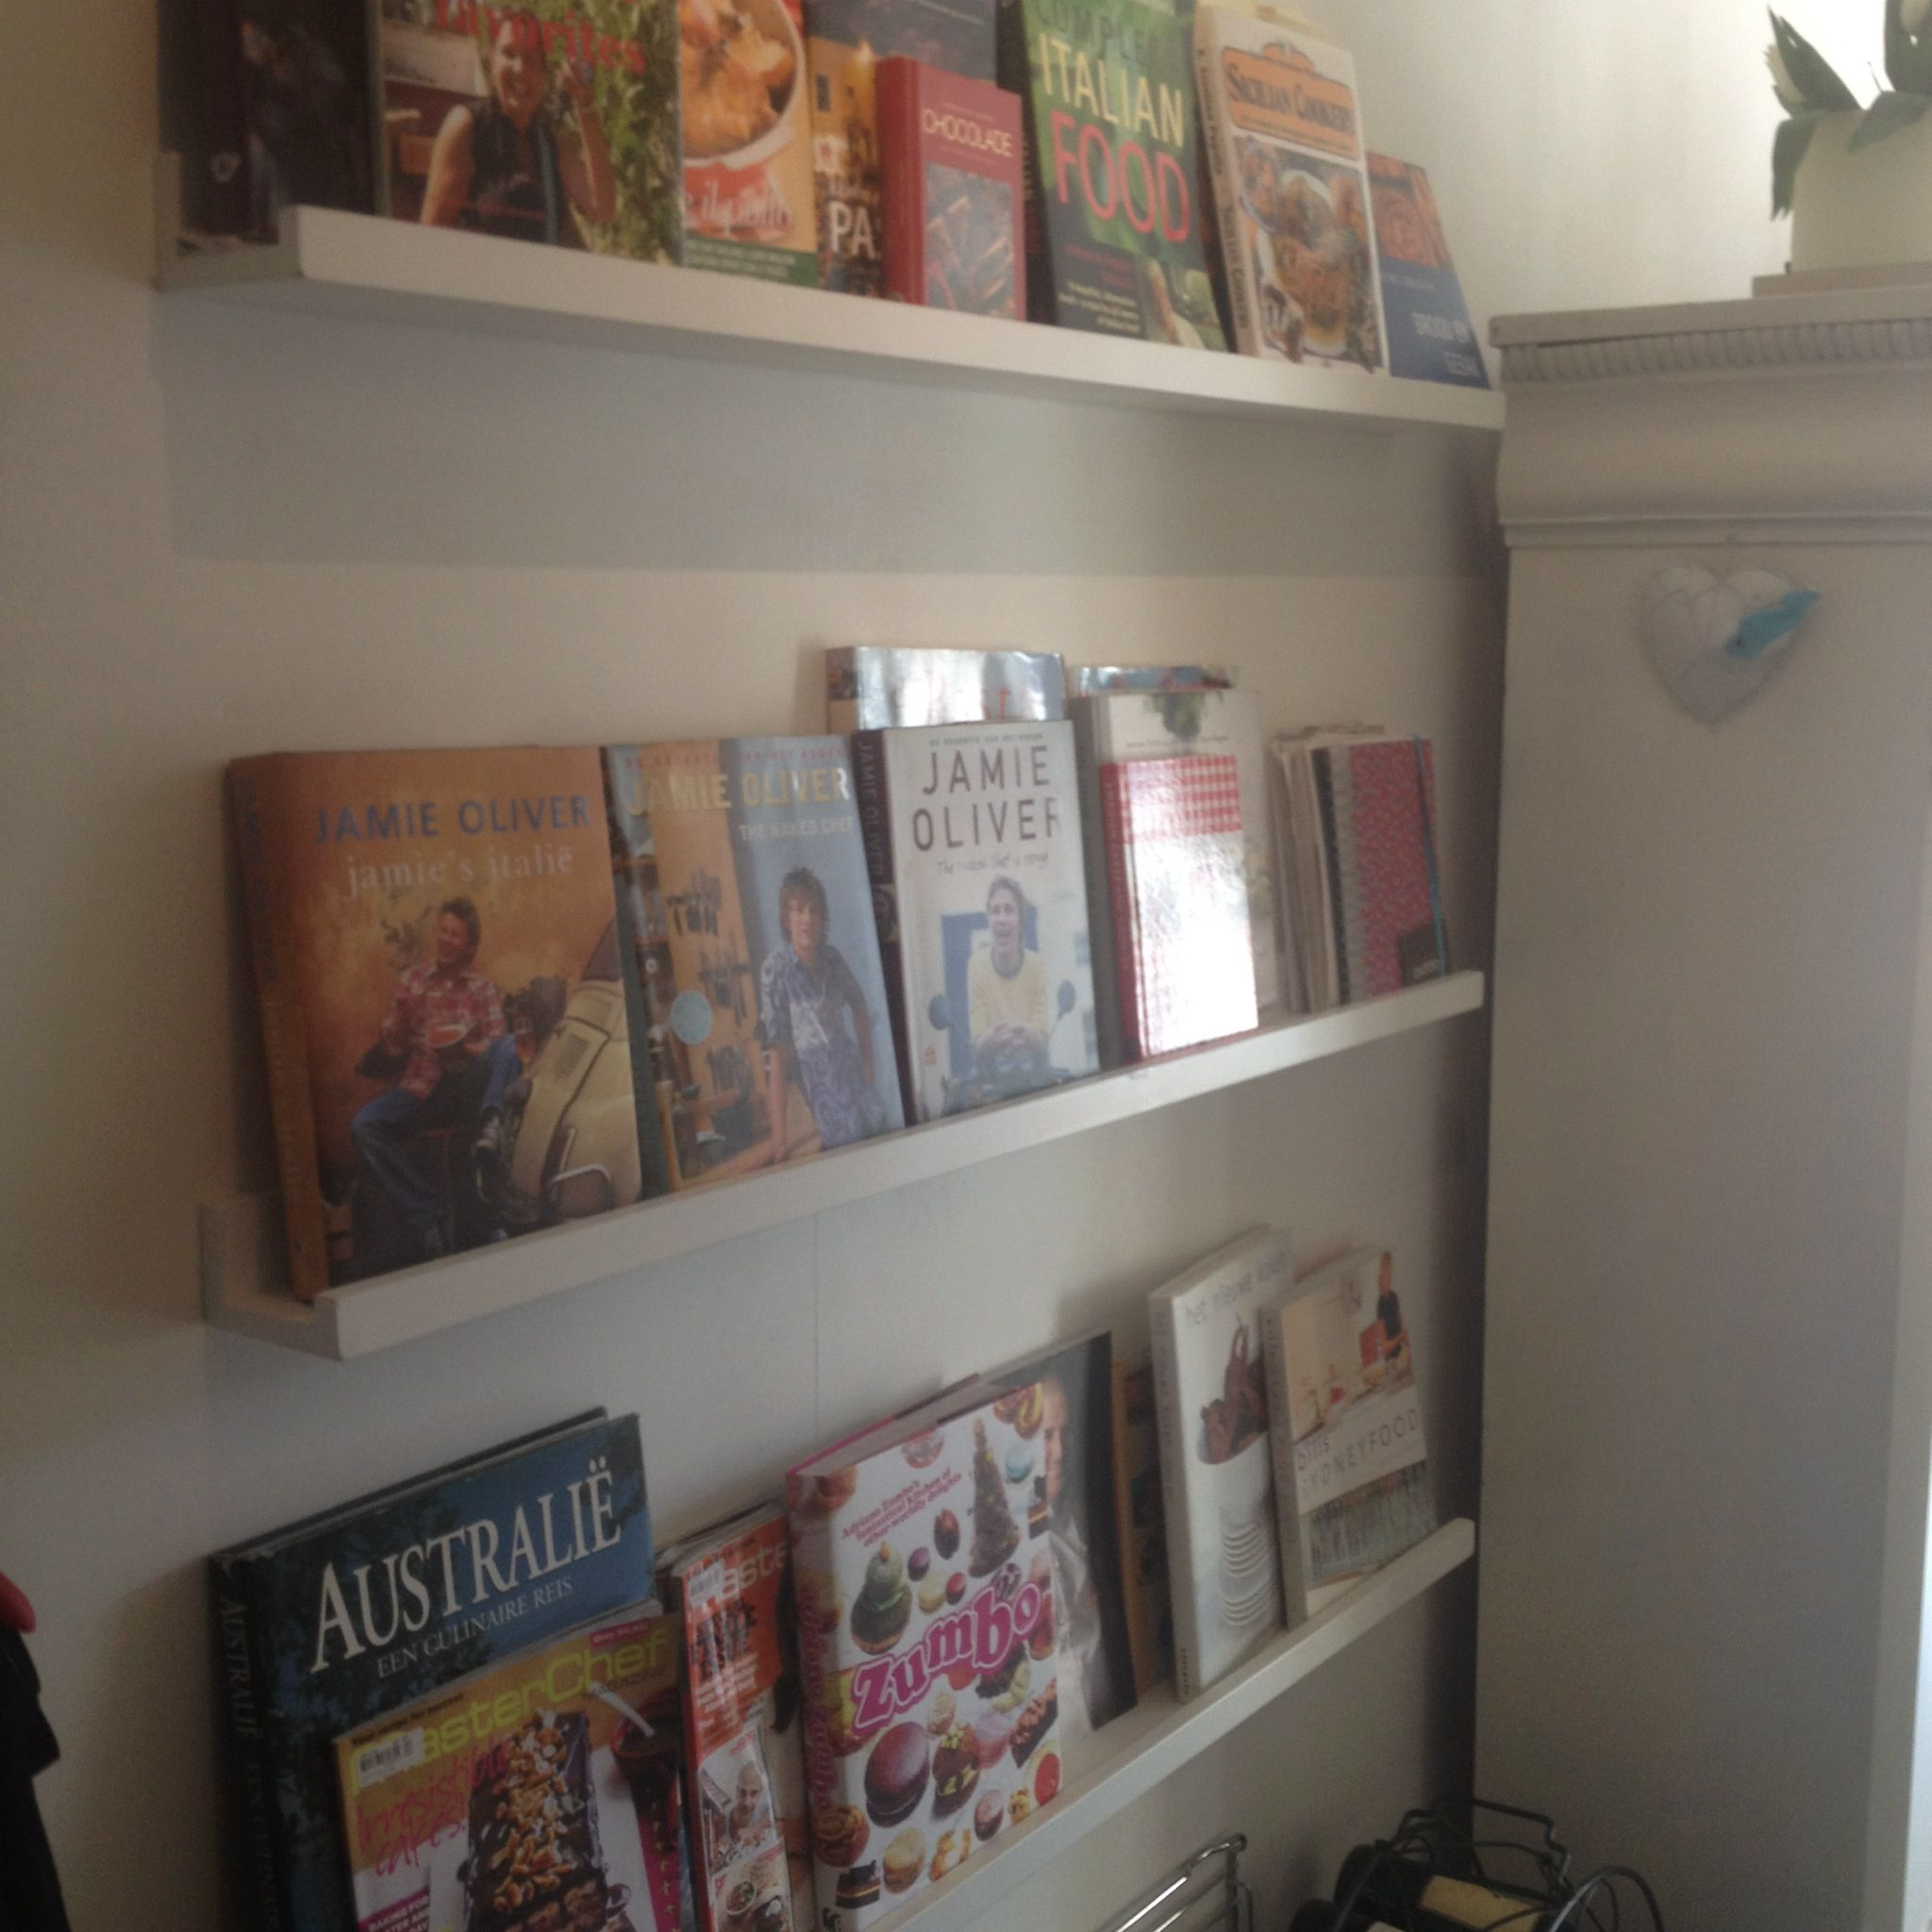 Ikea Photo Shelves For Cook Books In The Kitchen Küche